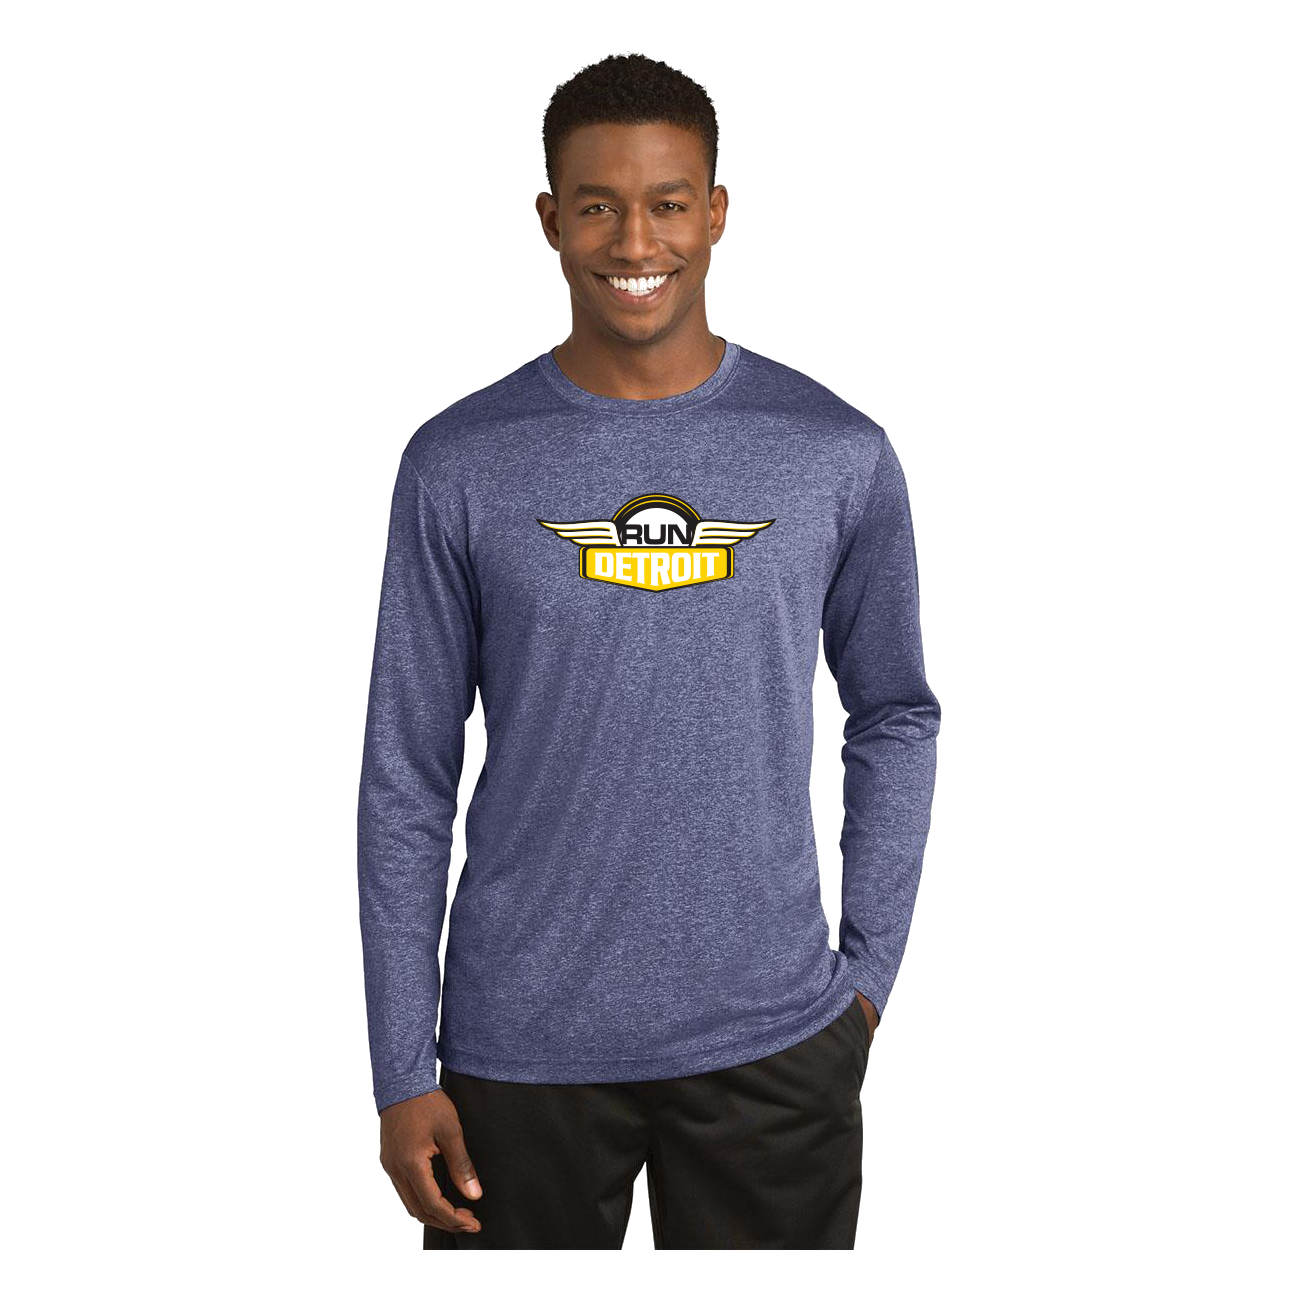 Heathered Navy long sleeve wicking shirt with RUNdetroit logo on chest.